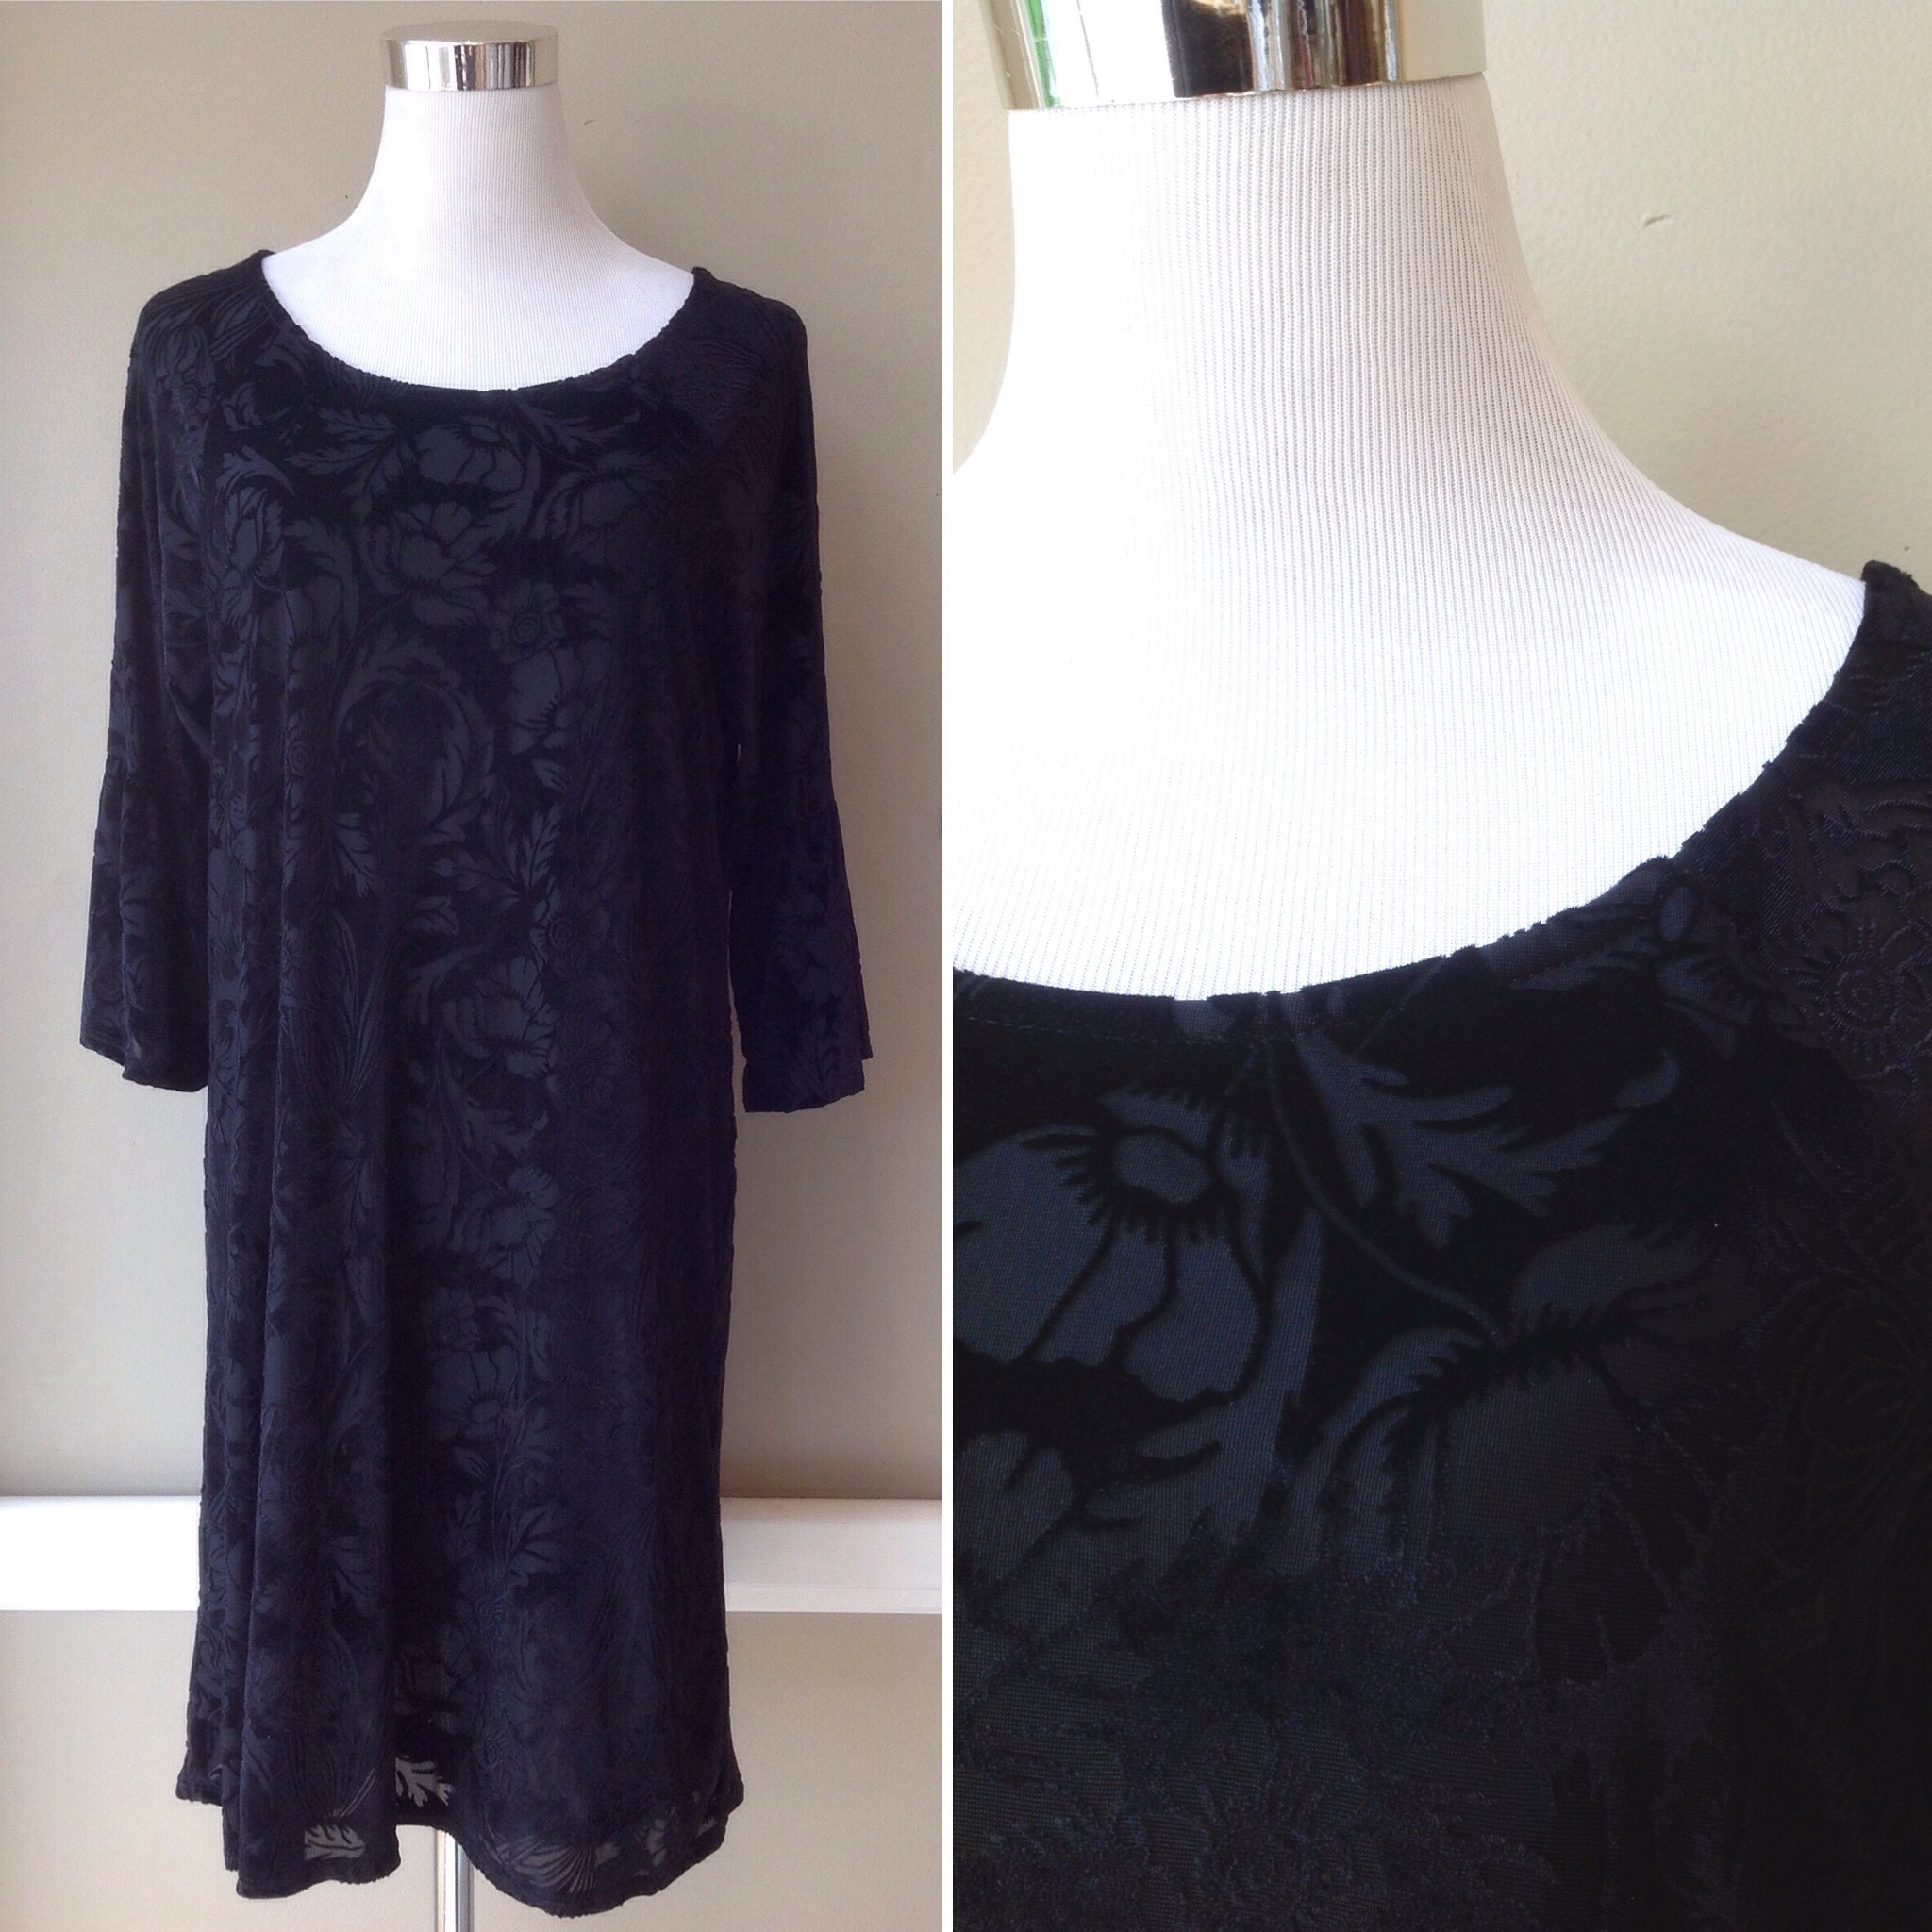 Velvet burnout tunic dress with 3/4 sleeves in black floral print, $52